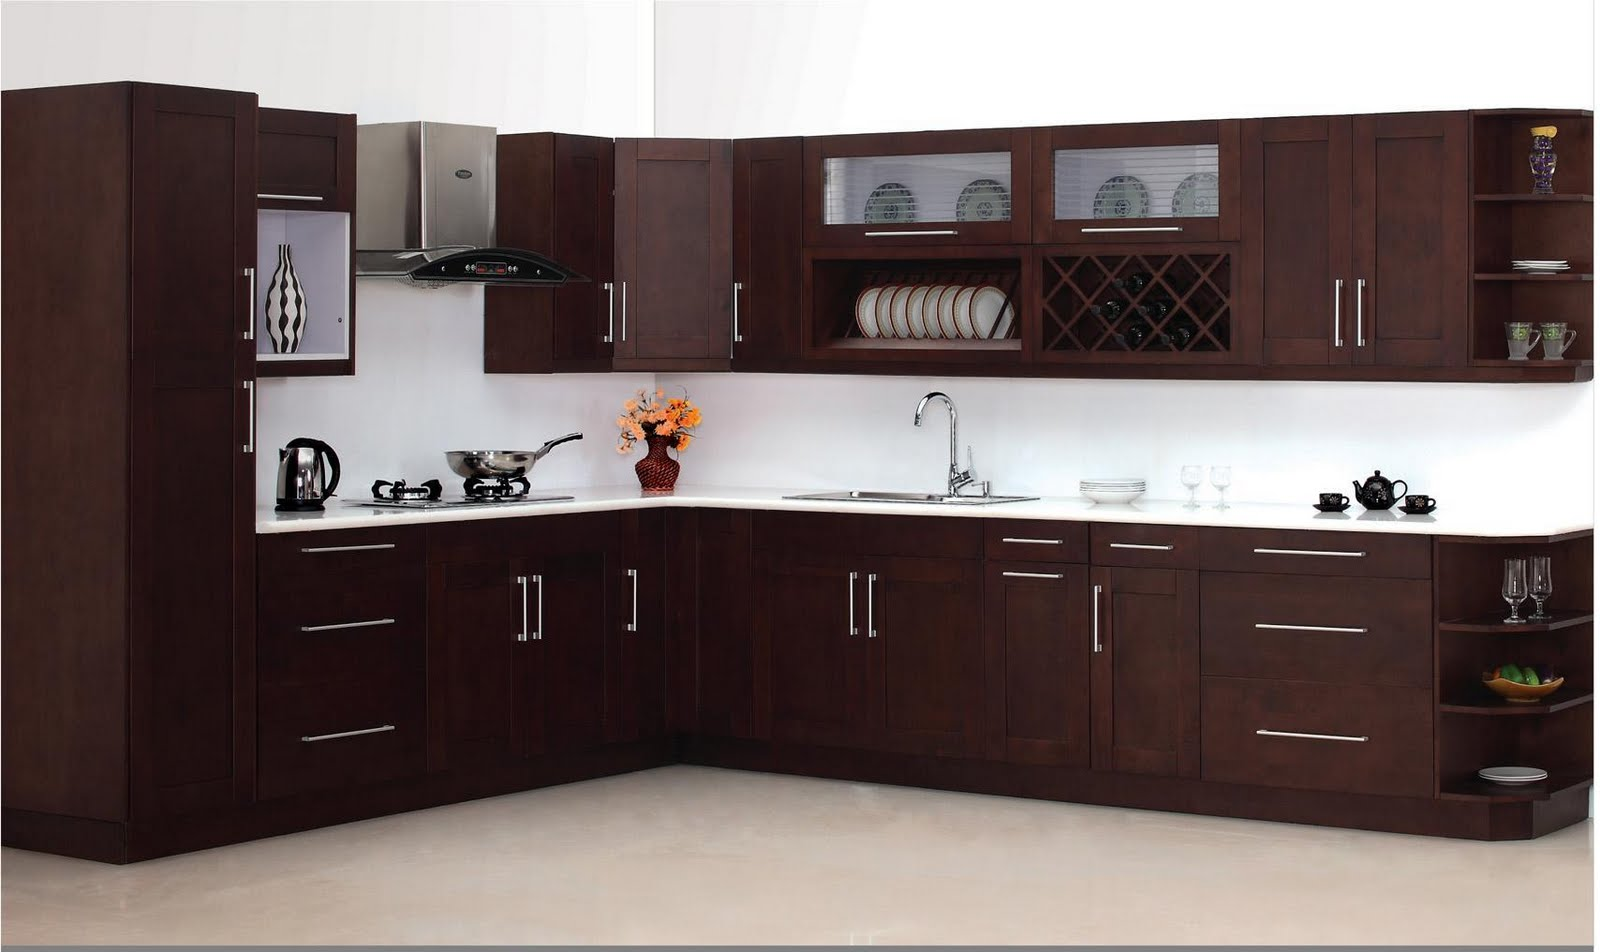 Remarkable Espresso Maple Shaker Kitchen Cabinets 1600 x 952 · 110 kB · jpeg